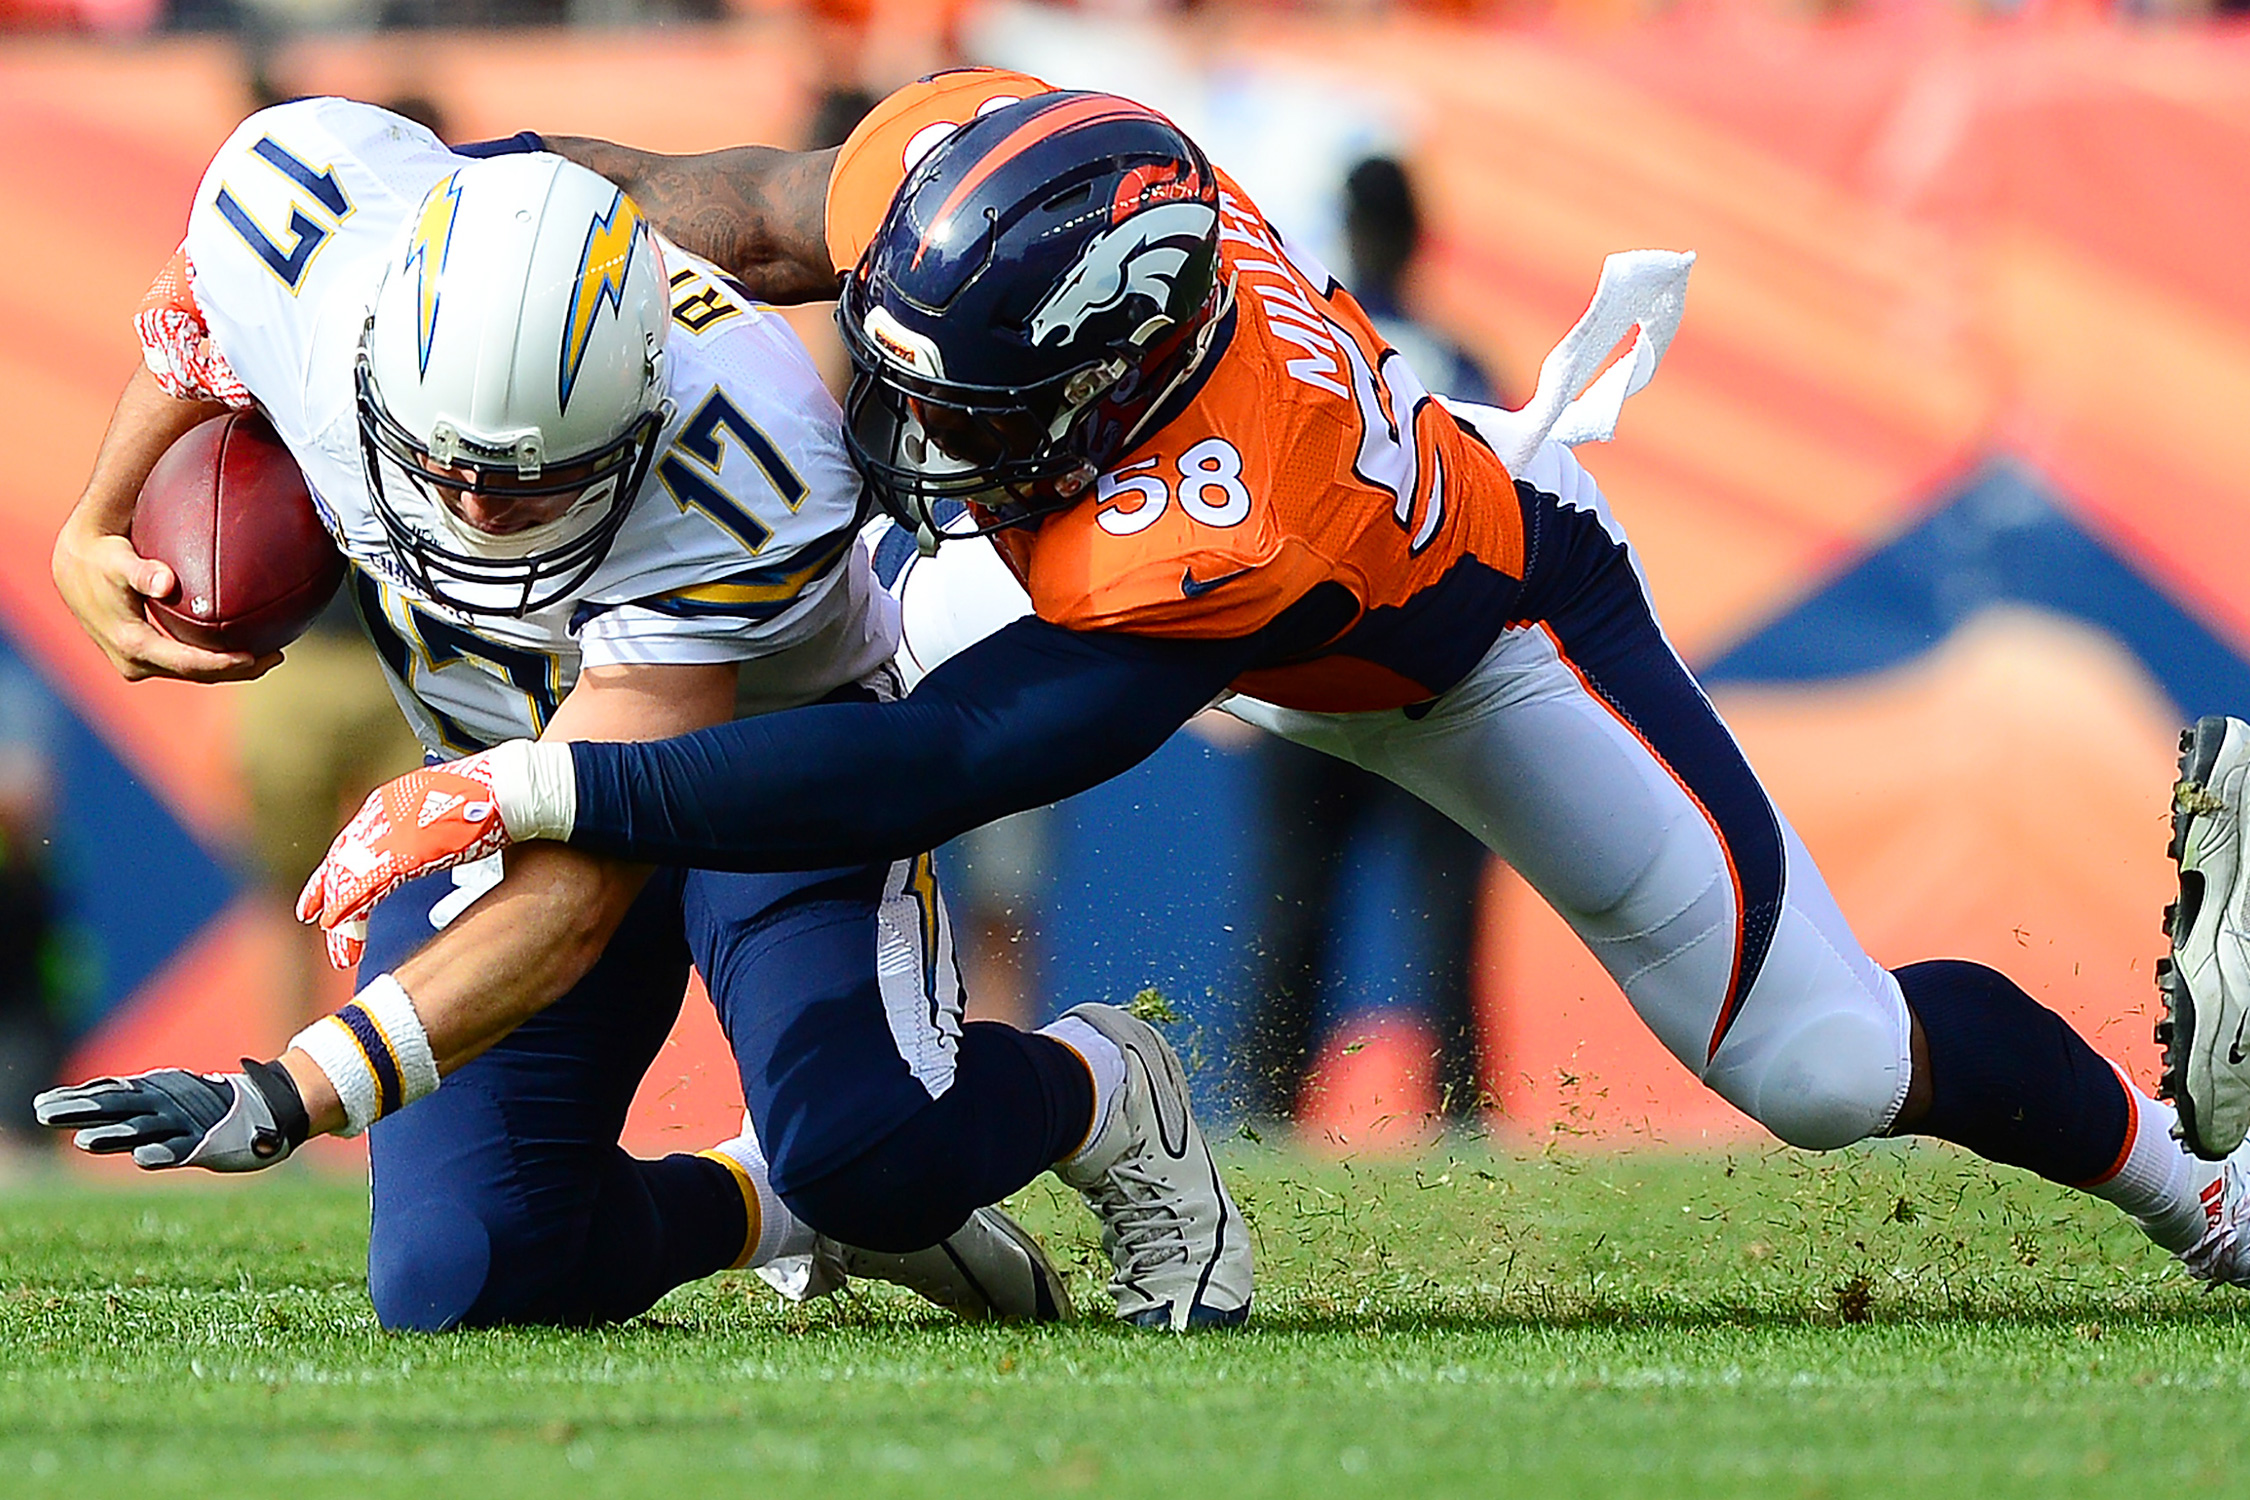 What is there to say about the reigning Super Bowl MVP that hasn't been said already? He's the linchpin of the defense that has yet again led Denver to a great start despite a dicey quarterback situation, and he's second in the league with 8.5 sacks.